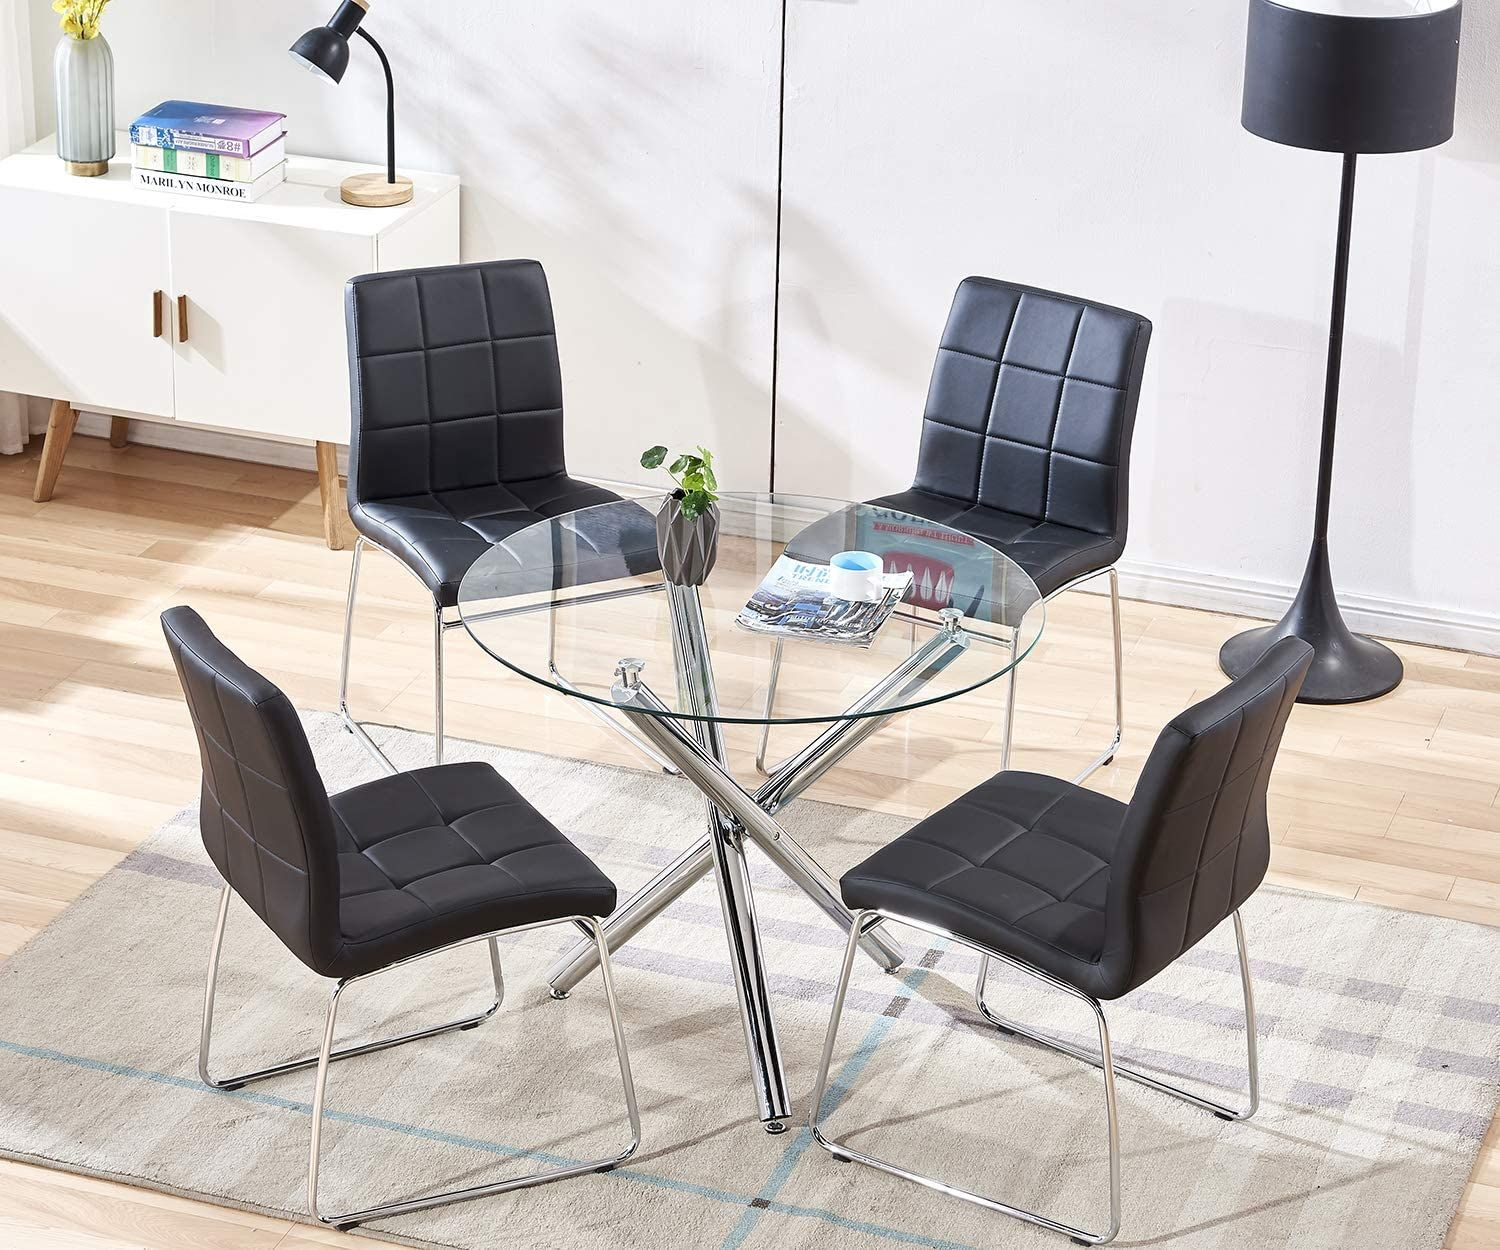 Modern Round Dining Table With Three Table Legs